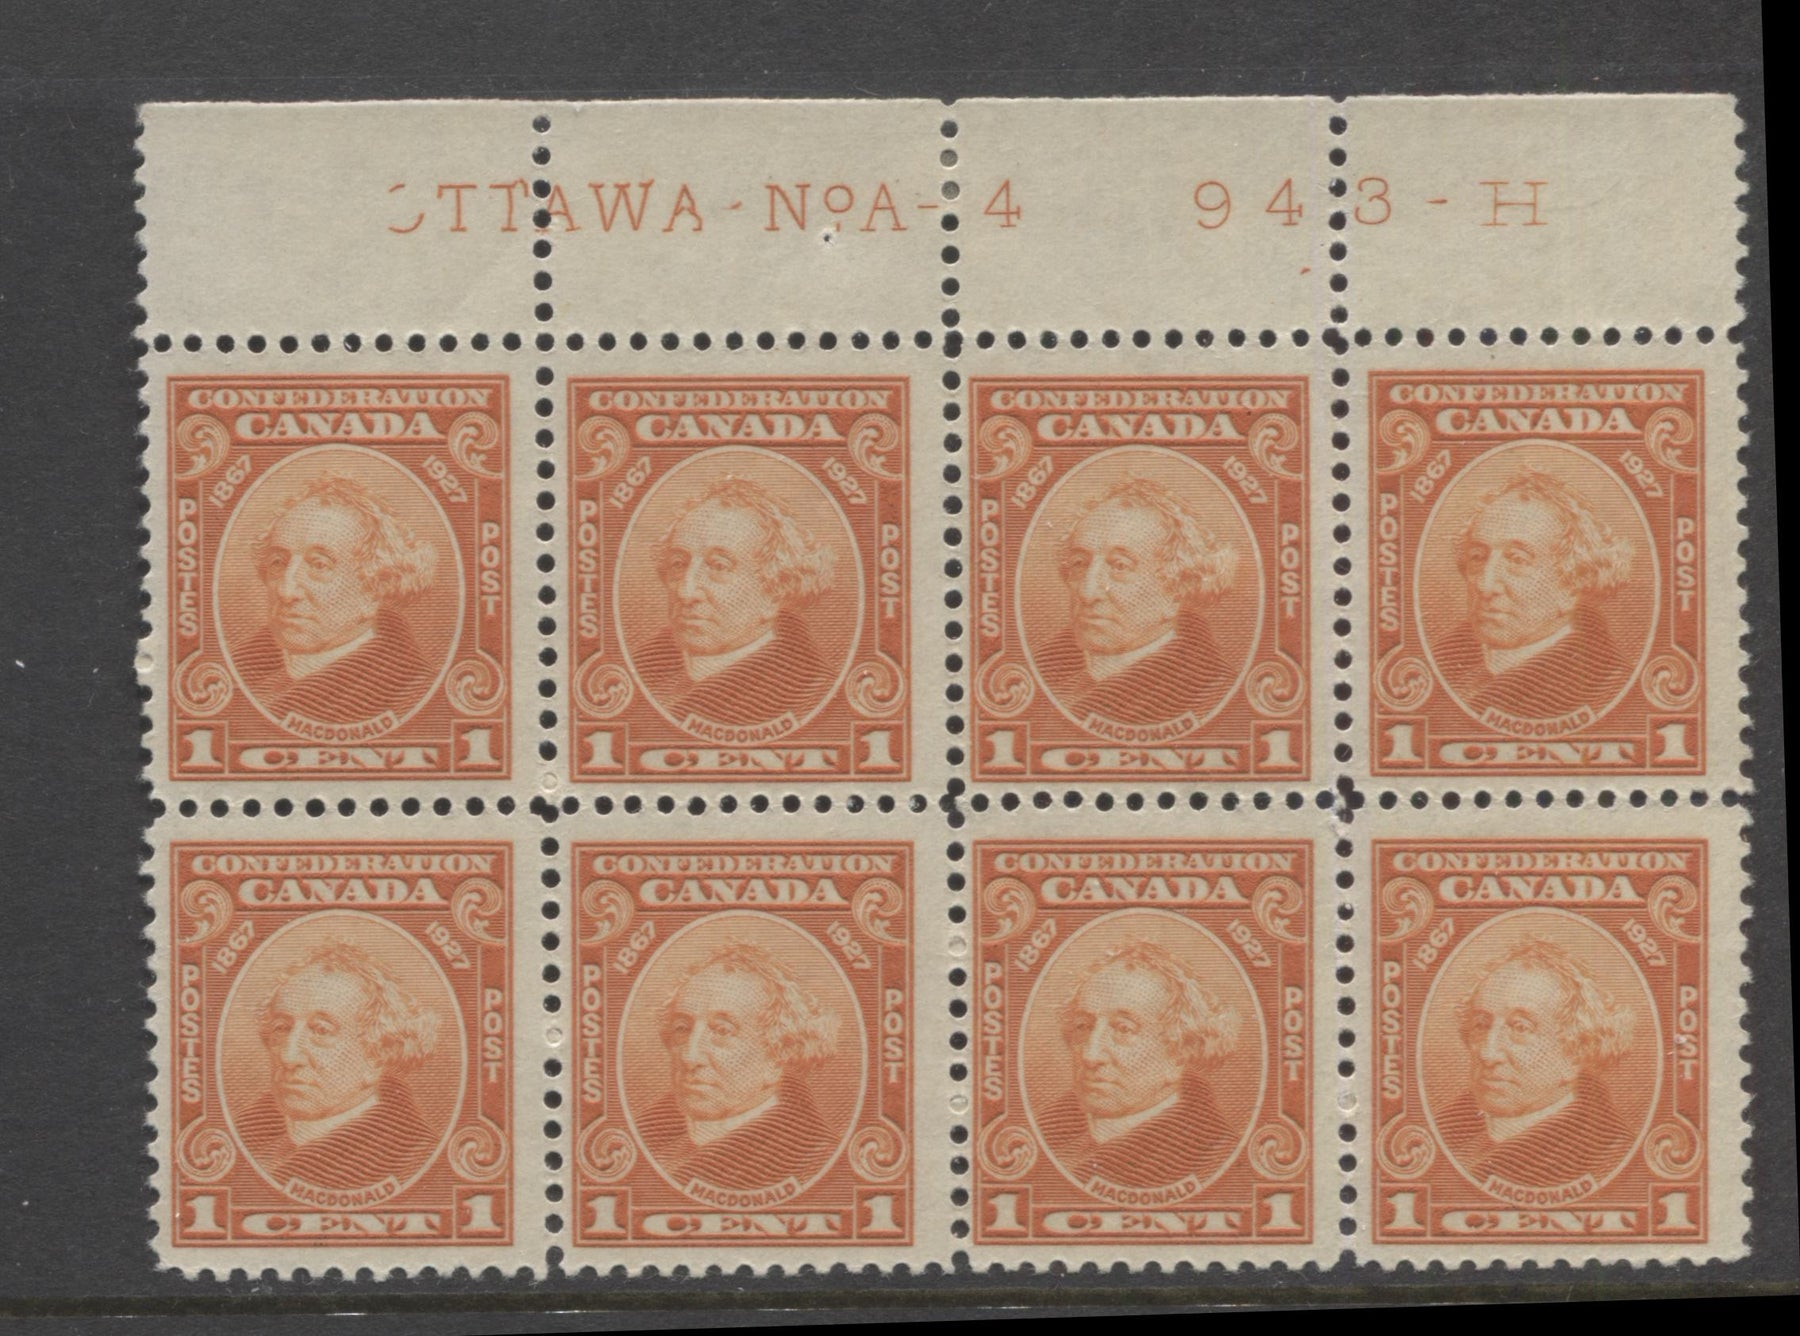 Canada #141 1c Deep Orange, Sir John A. Macdonald 1927 60th Anniversary of Confederation Issue Fine LH Plate 4 Block of 8 Brixton Chrome